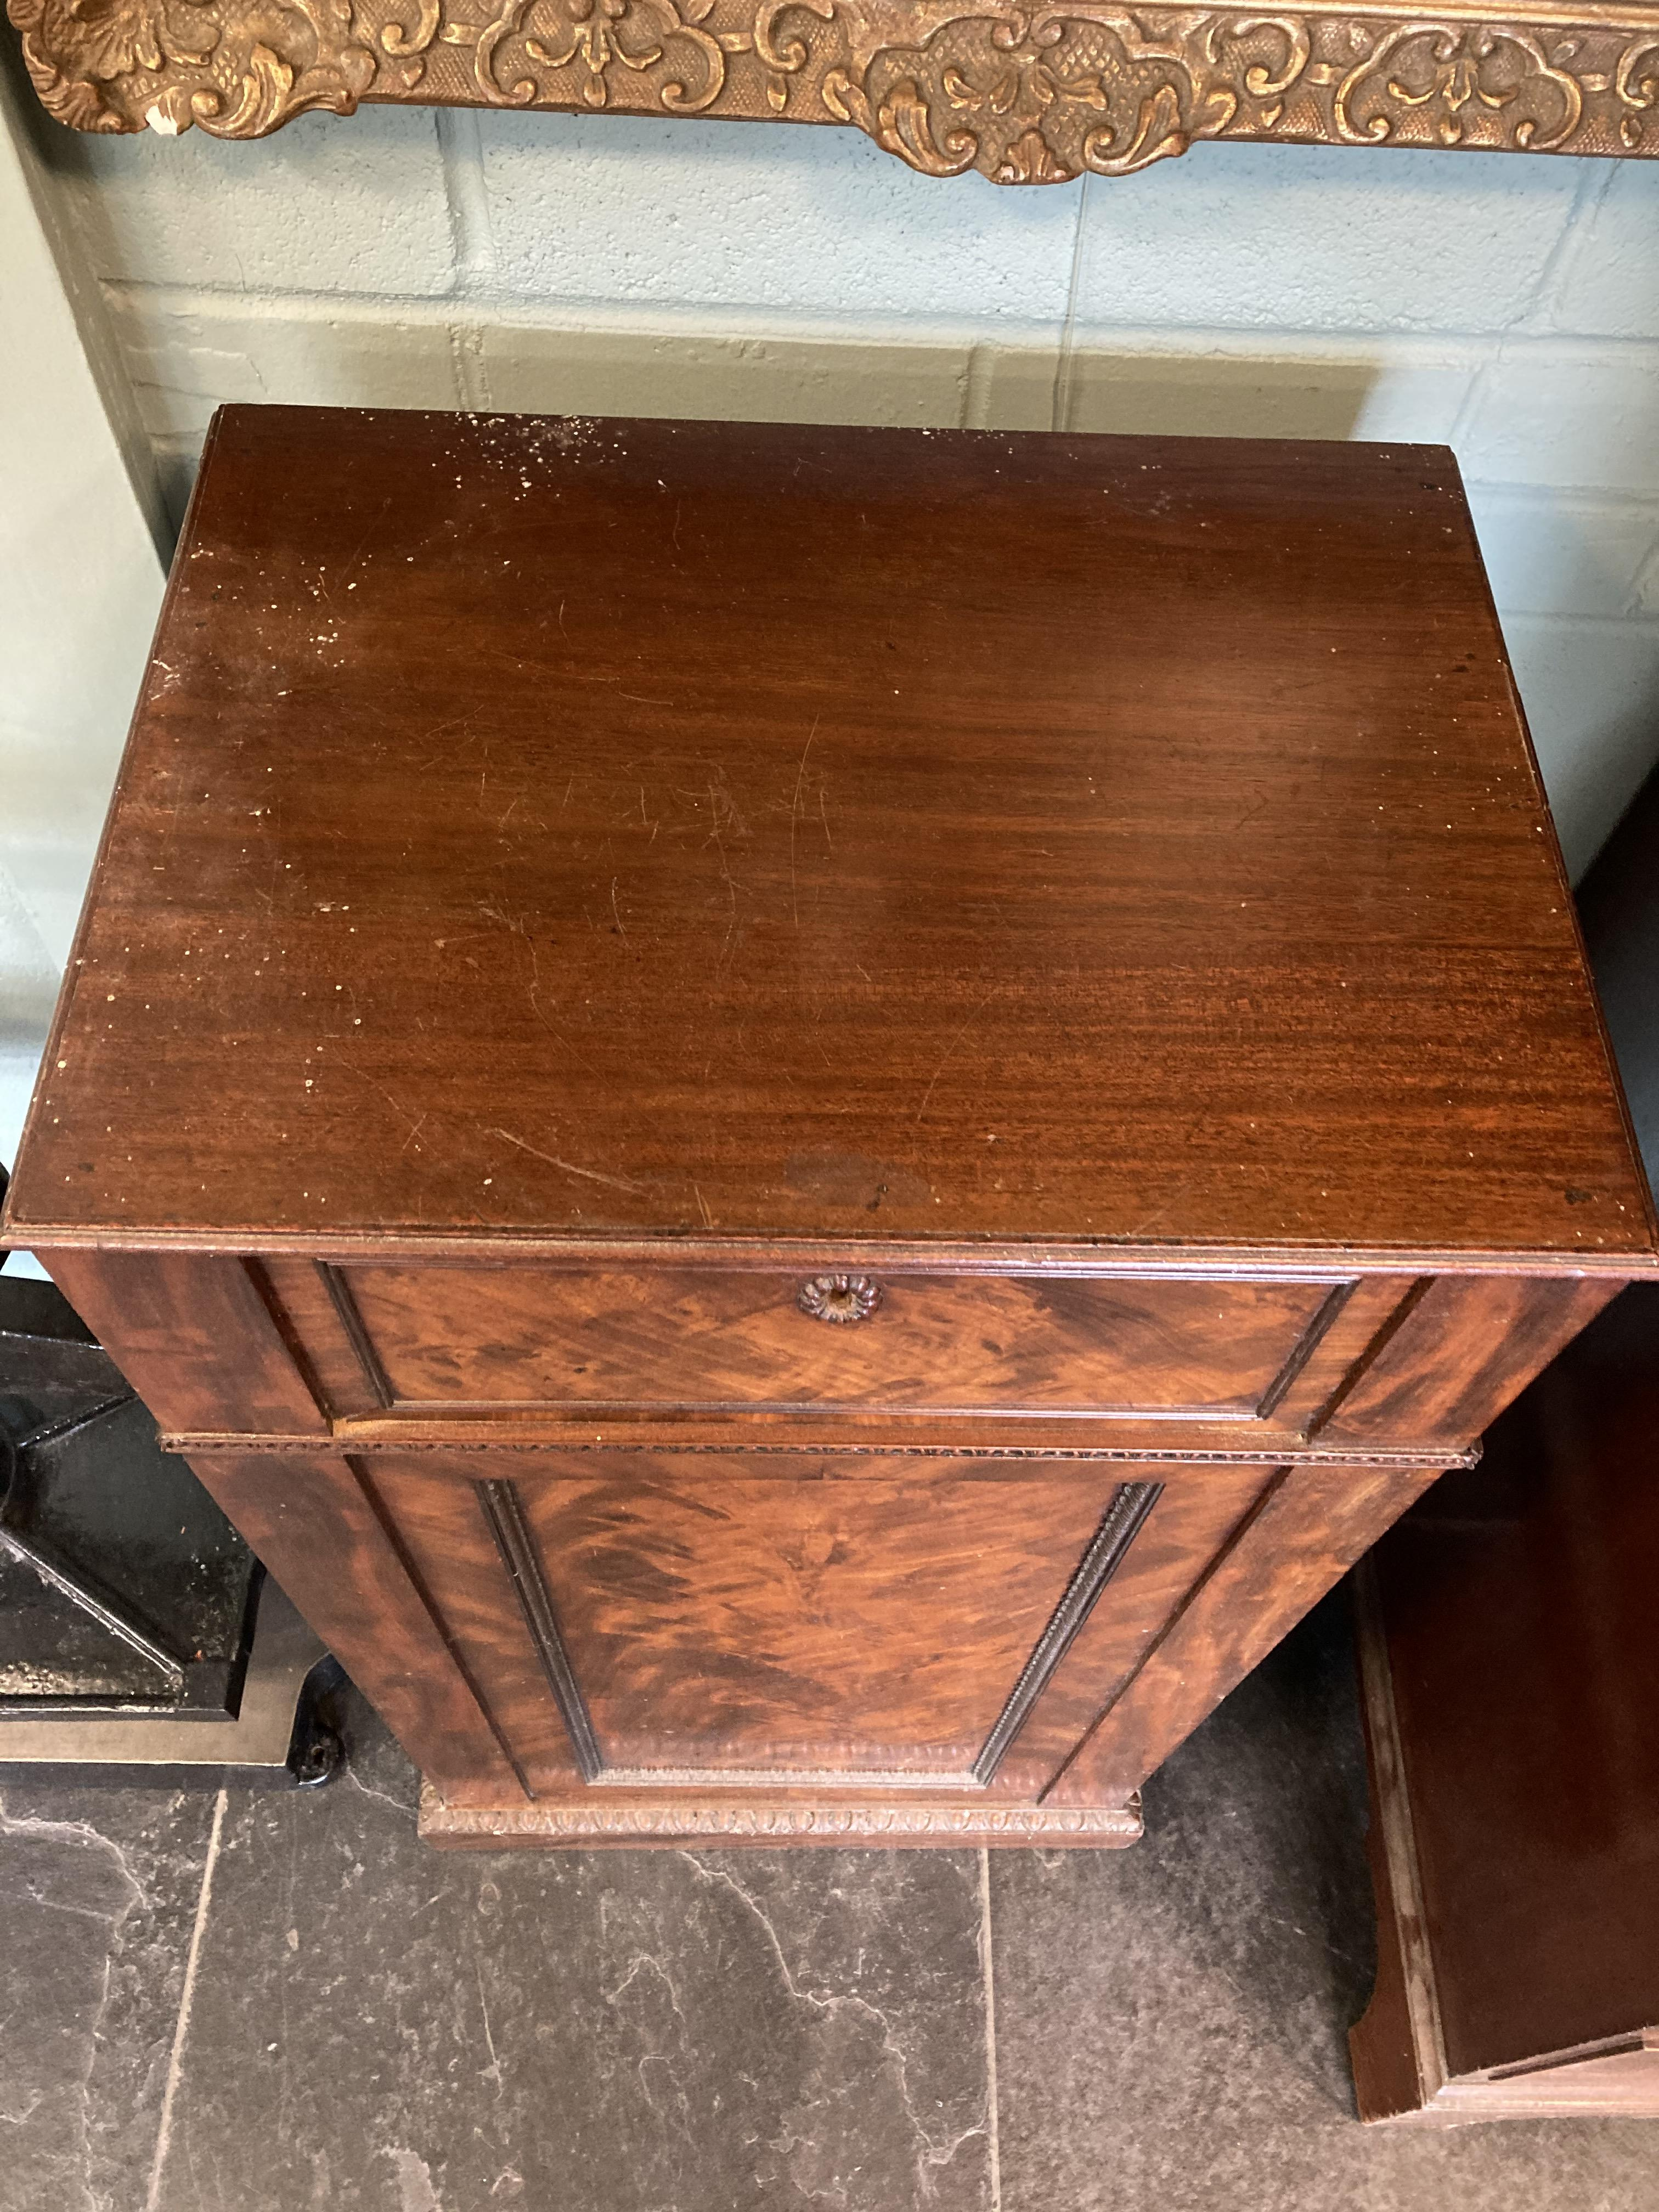 * Cabinets. Pair of William IV pedestal cabinets - Image 3 of 17